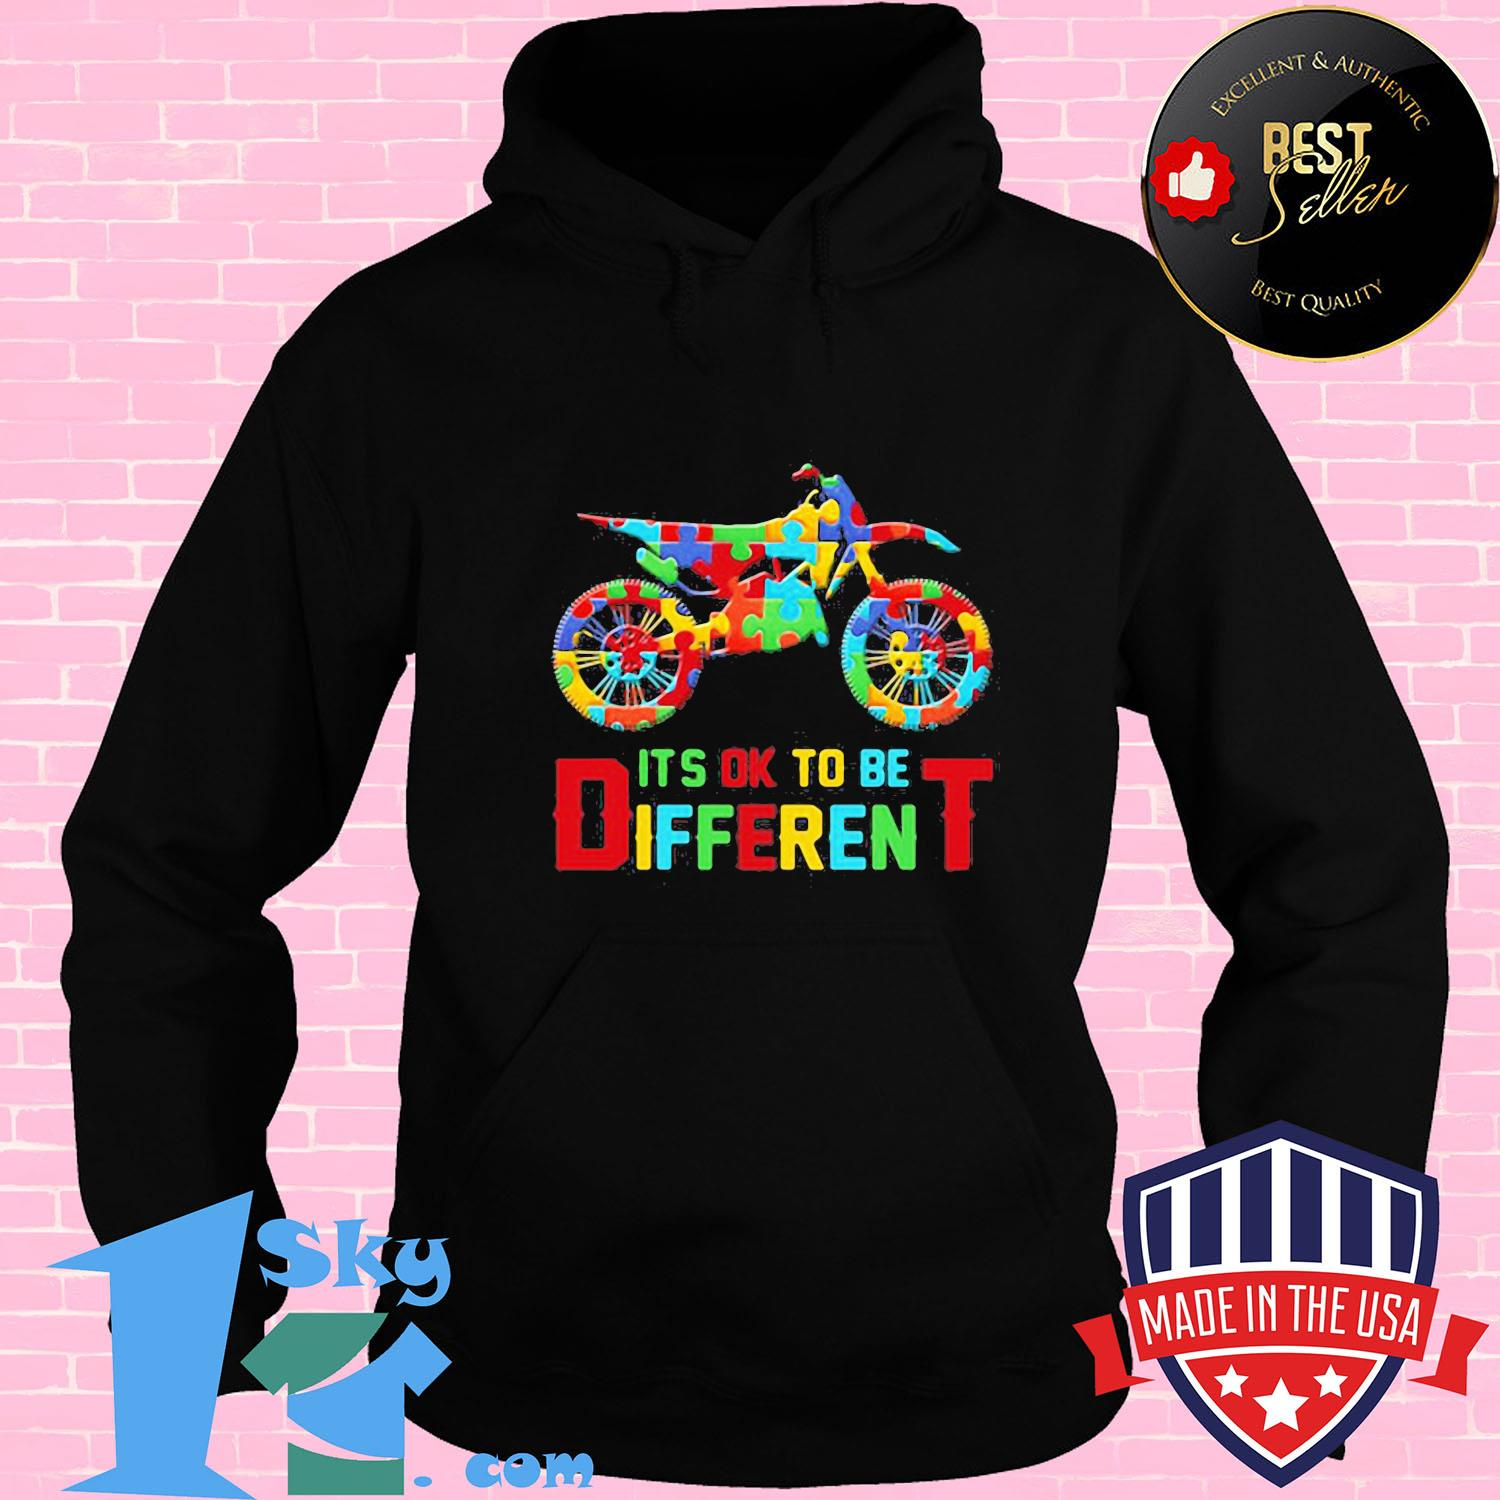 de25ccd5 motor autism it s ok to be different shirt hoodie - Shop trending - We offer all trend shirts - 1SkyTee